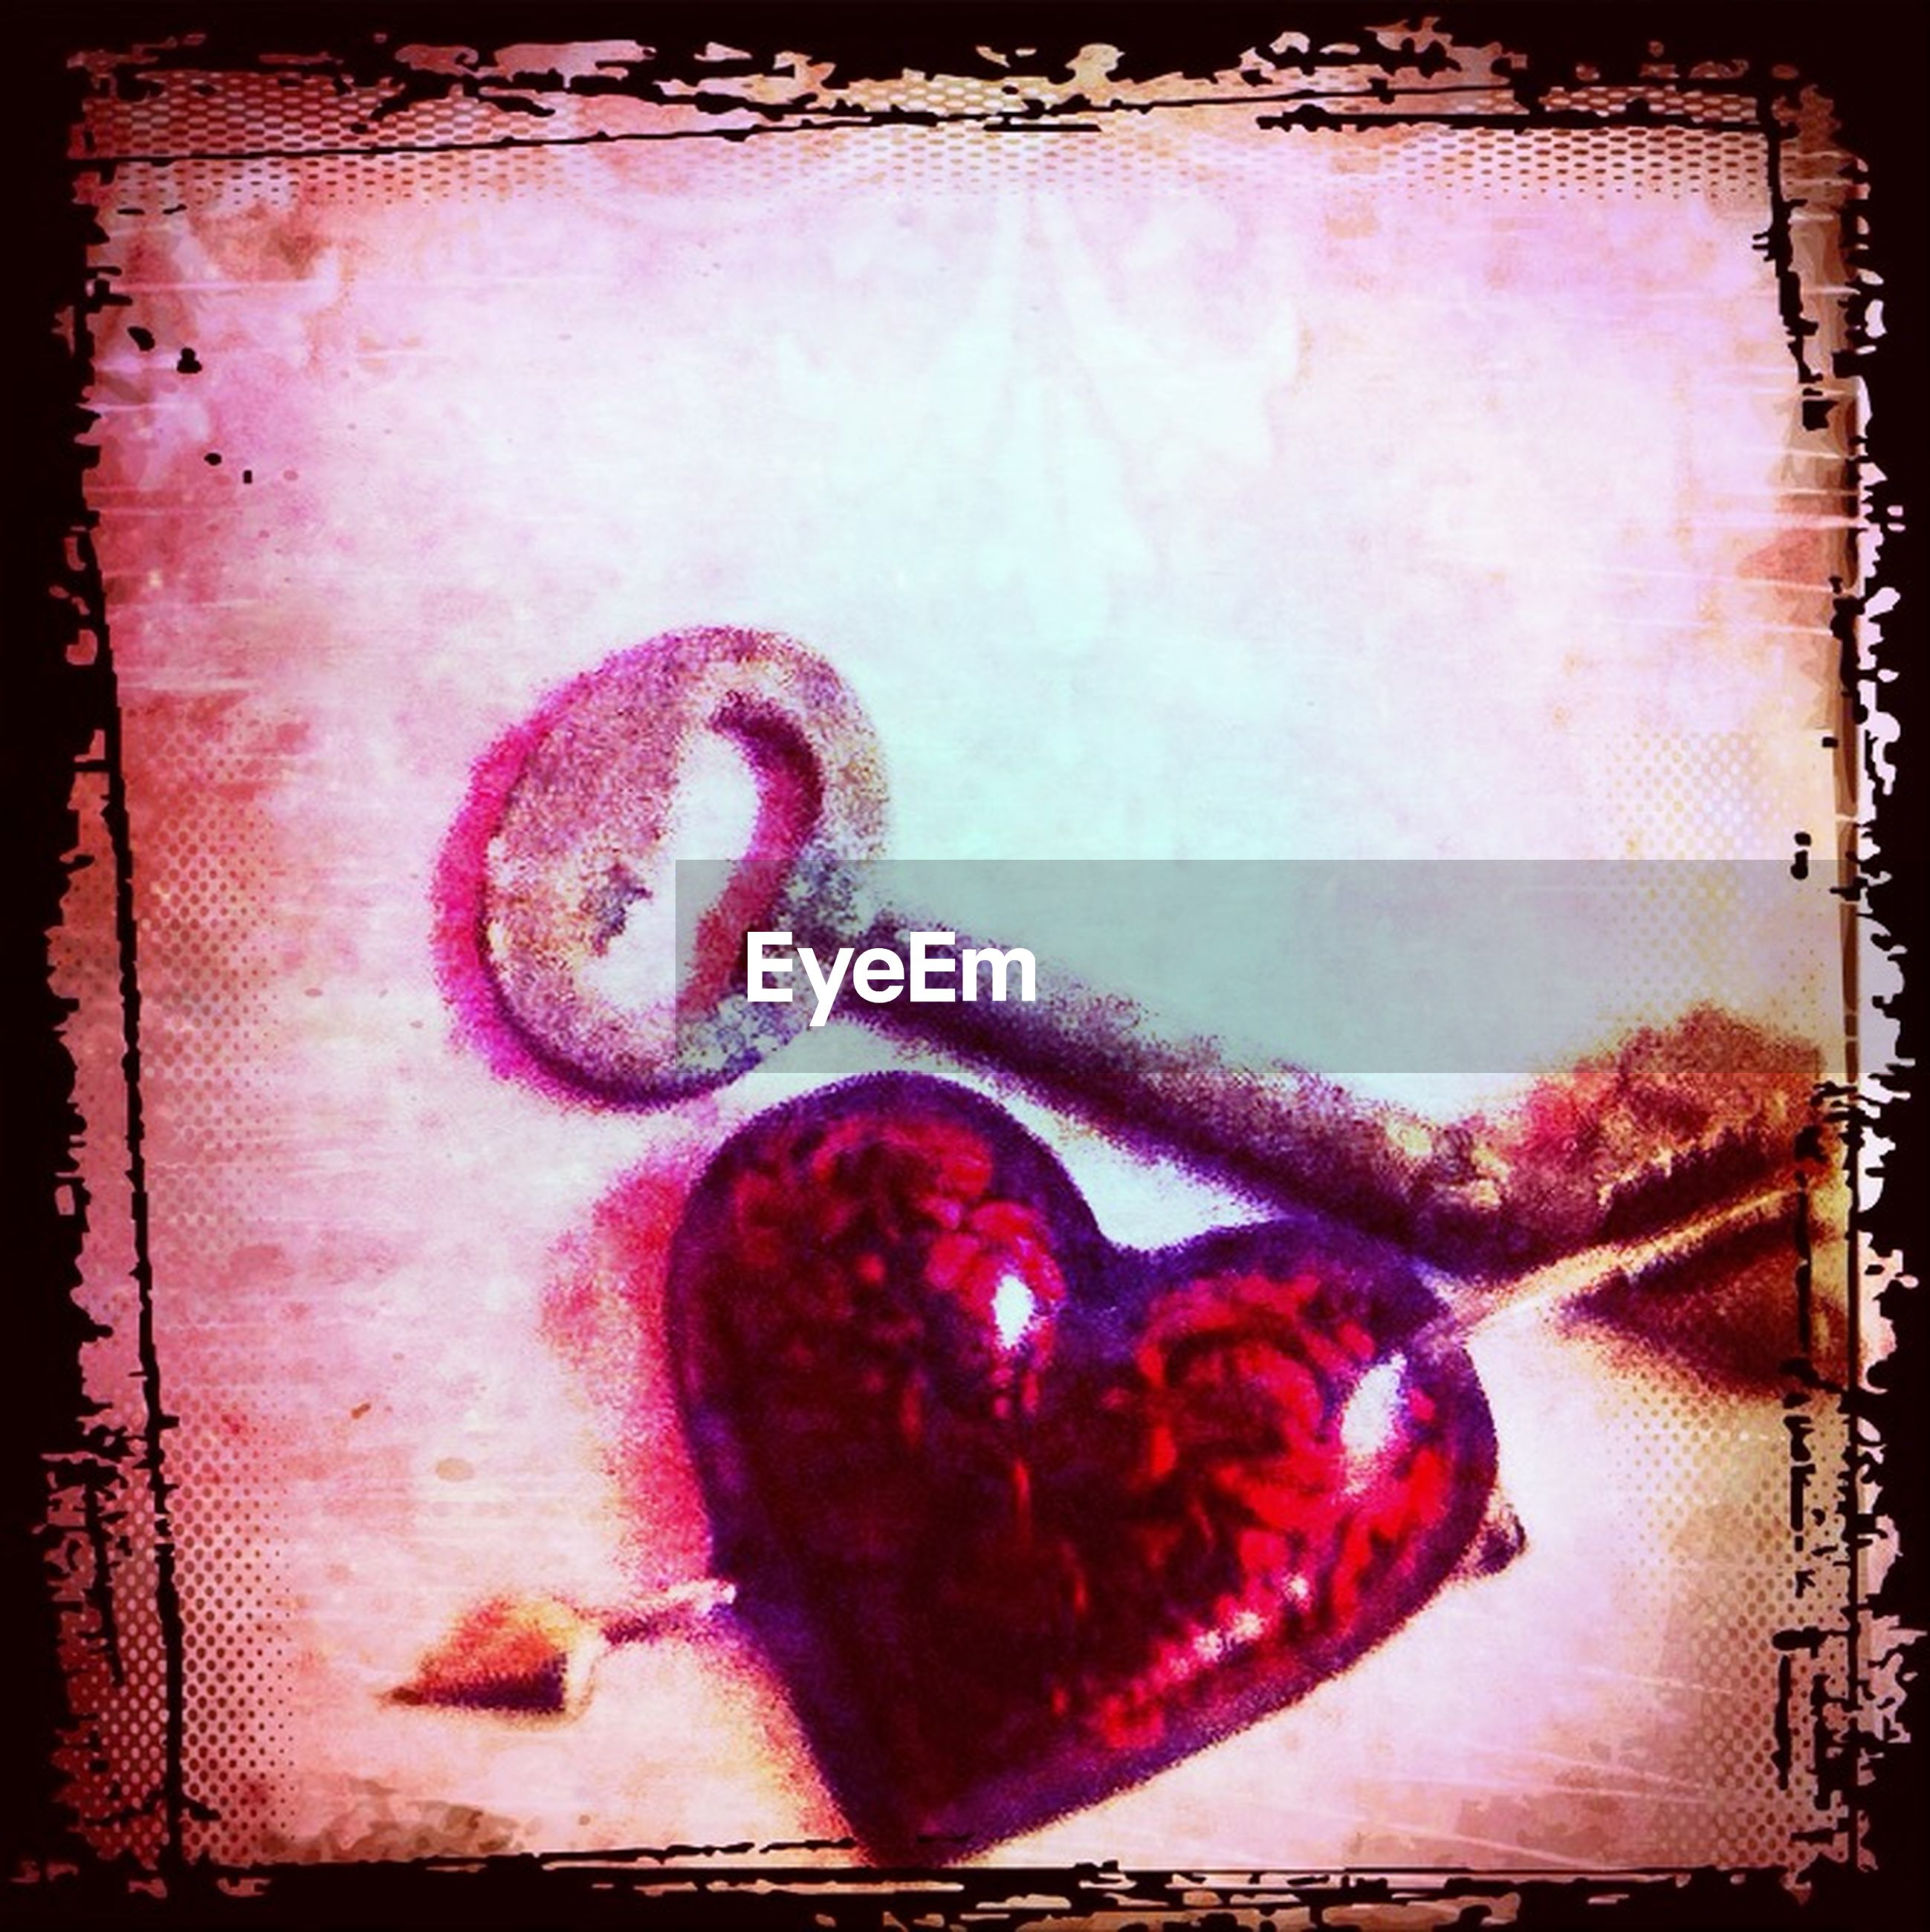 transfer print, auto post production filter, indoors, close-up, red, art and craft, art, creativity, wall - building feature, no people, communication, text, still life, heart shape, metal, wood - material, old, human representation, wall, western script